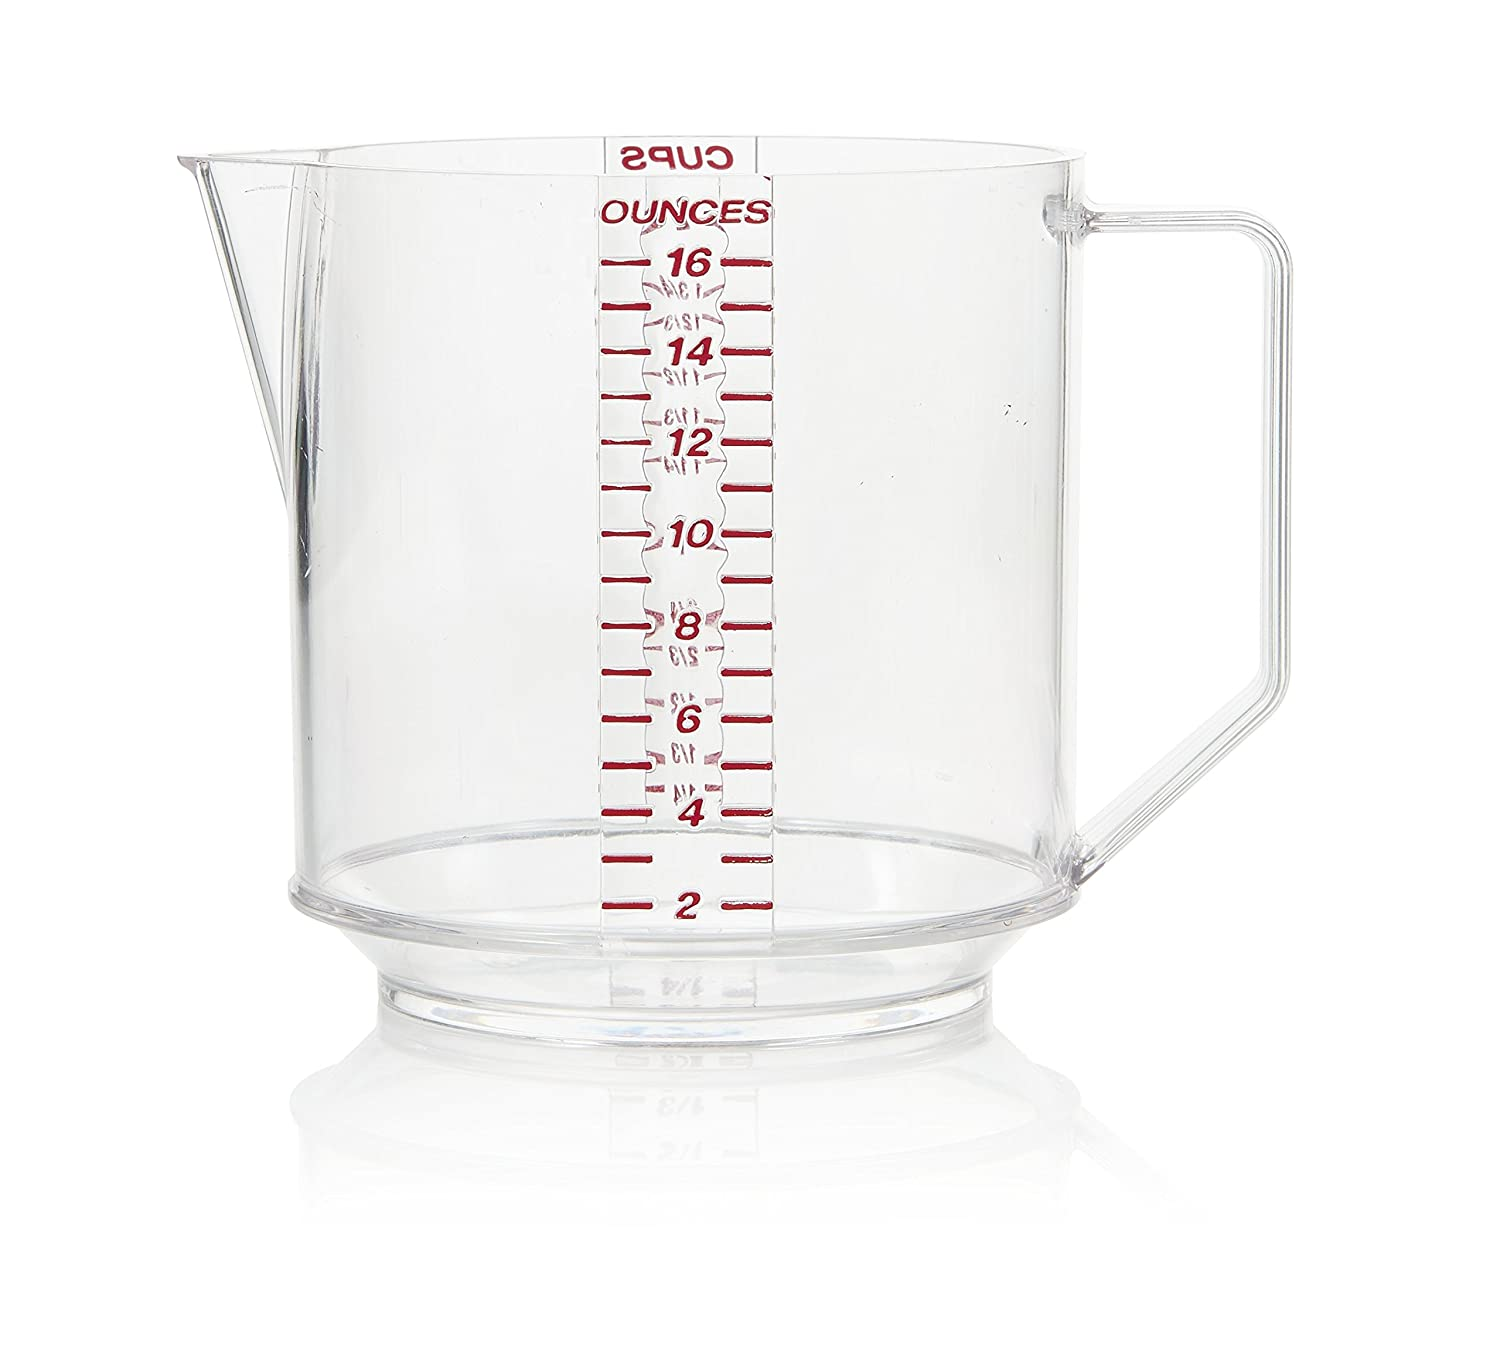 Arrow Home Products 00029 Two Cup Measure, Clear with Read Engraved Graduates